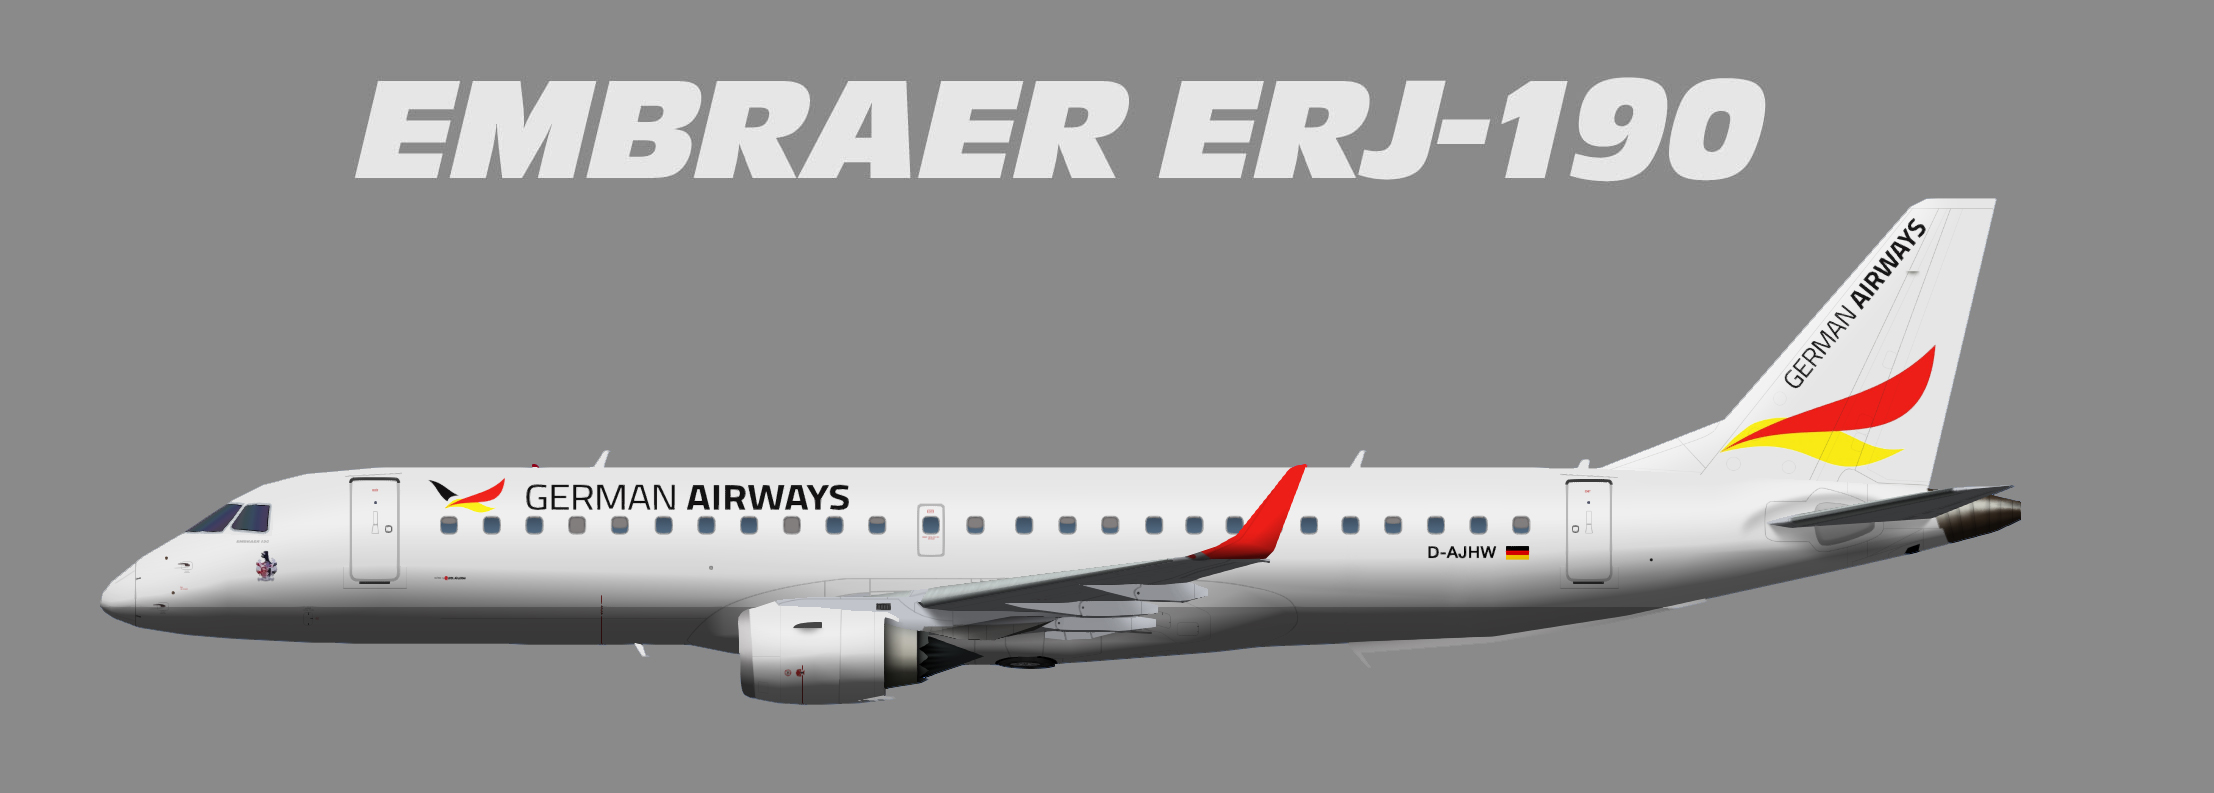 German Airways Embraer ERJ-190